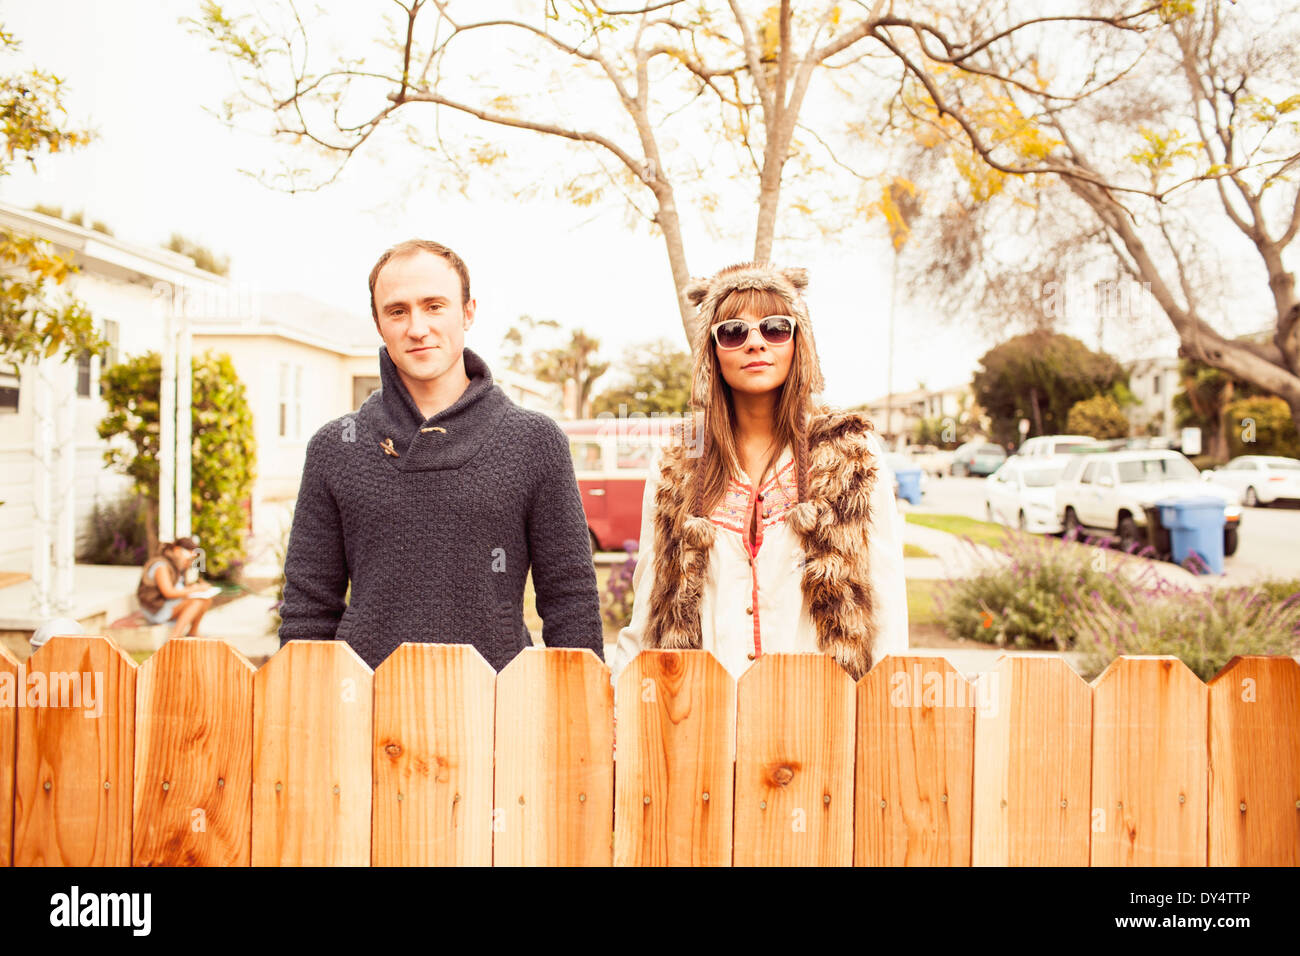 Couple behind wooden fence - Stock Image